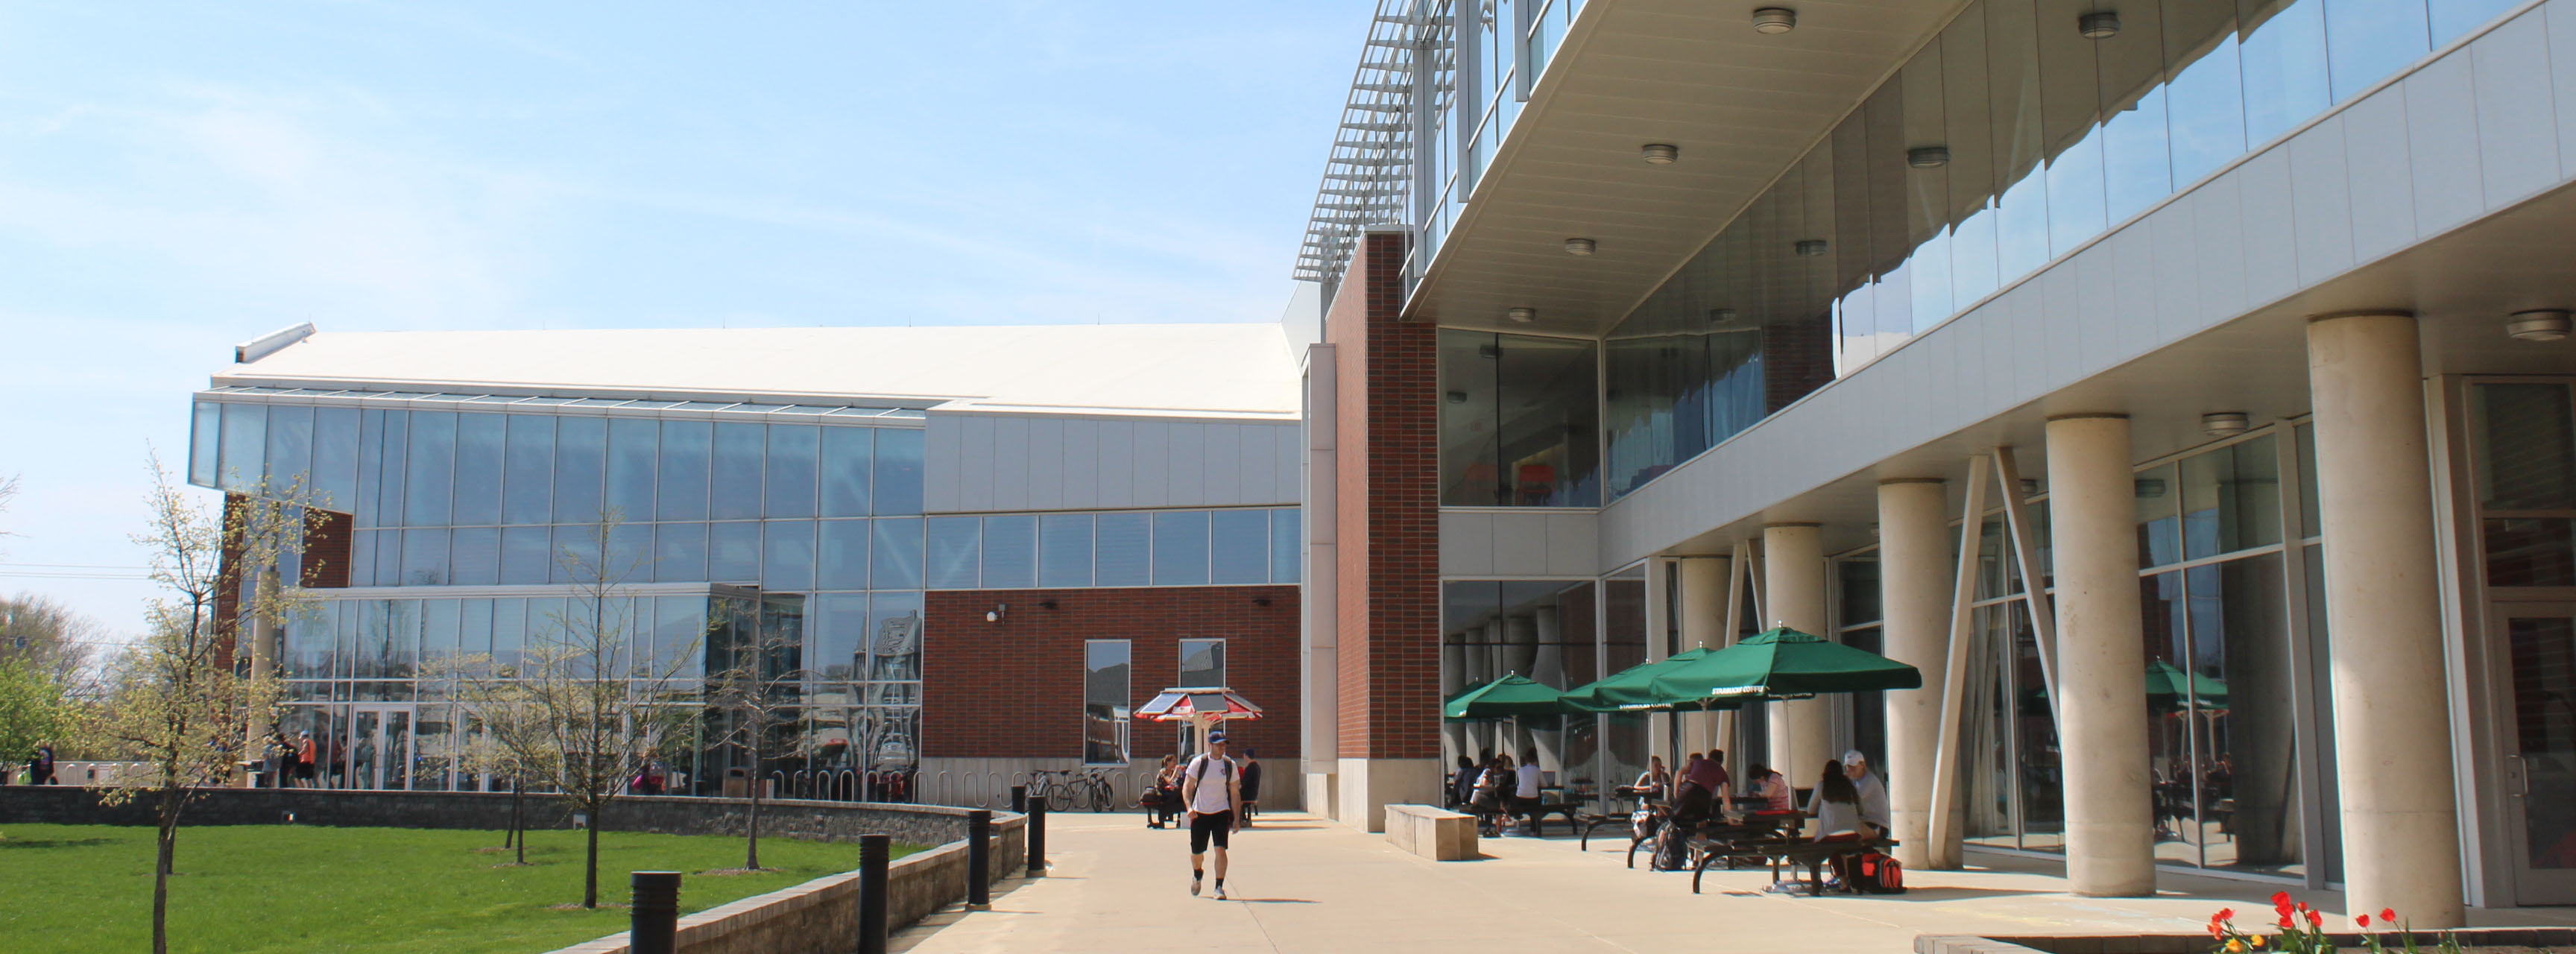 student fitness center exterior